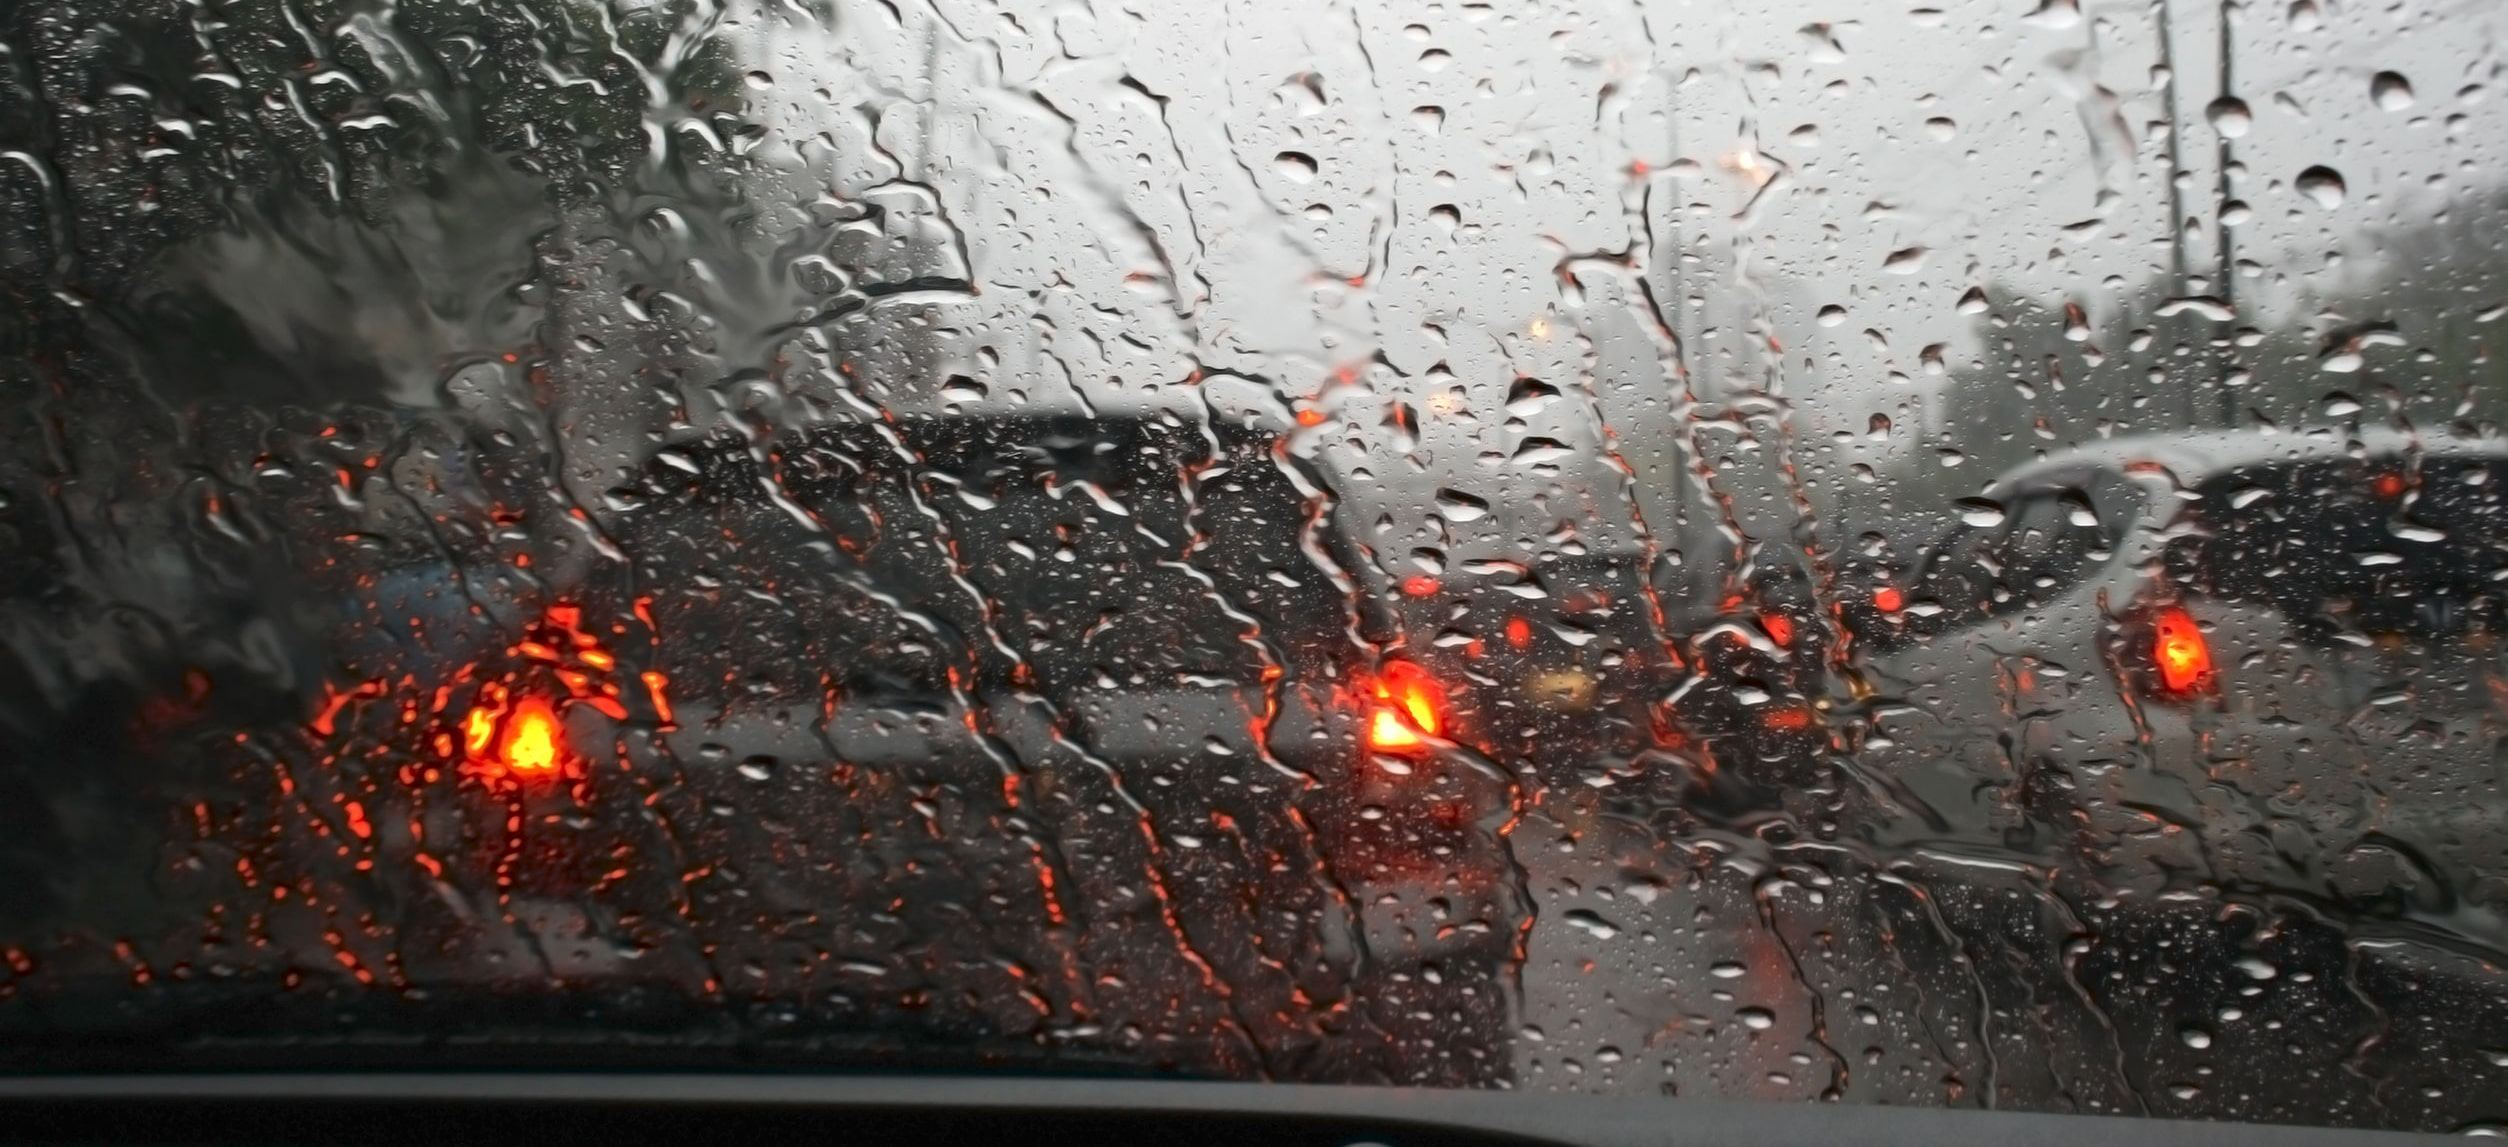 Road view through car window with rain drops